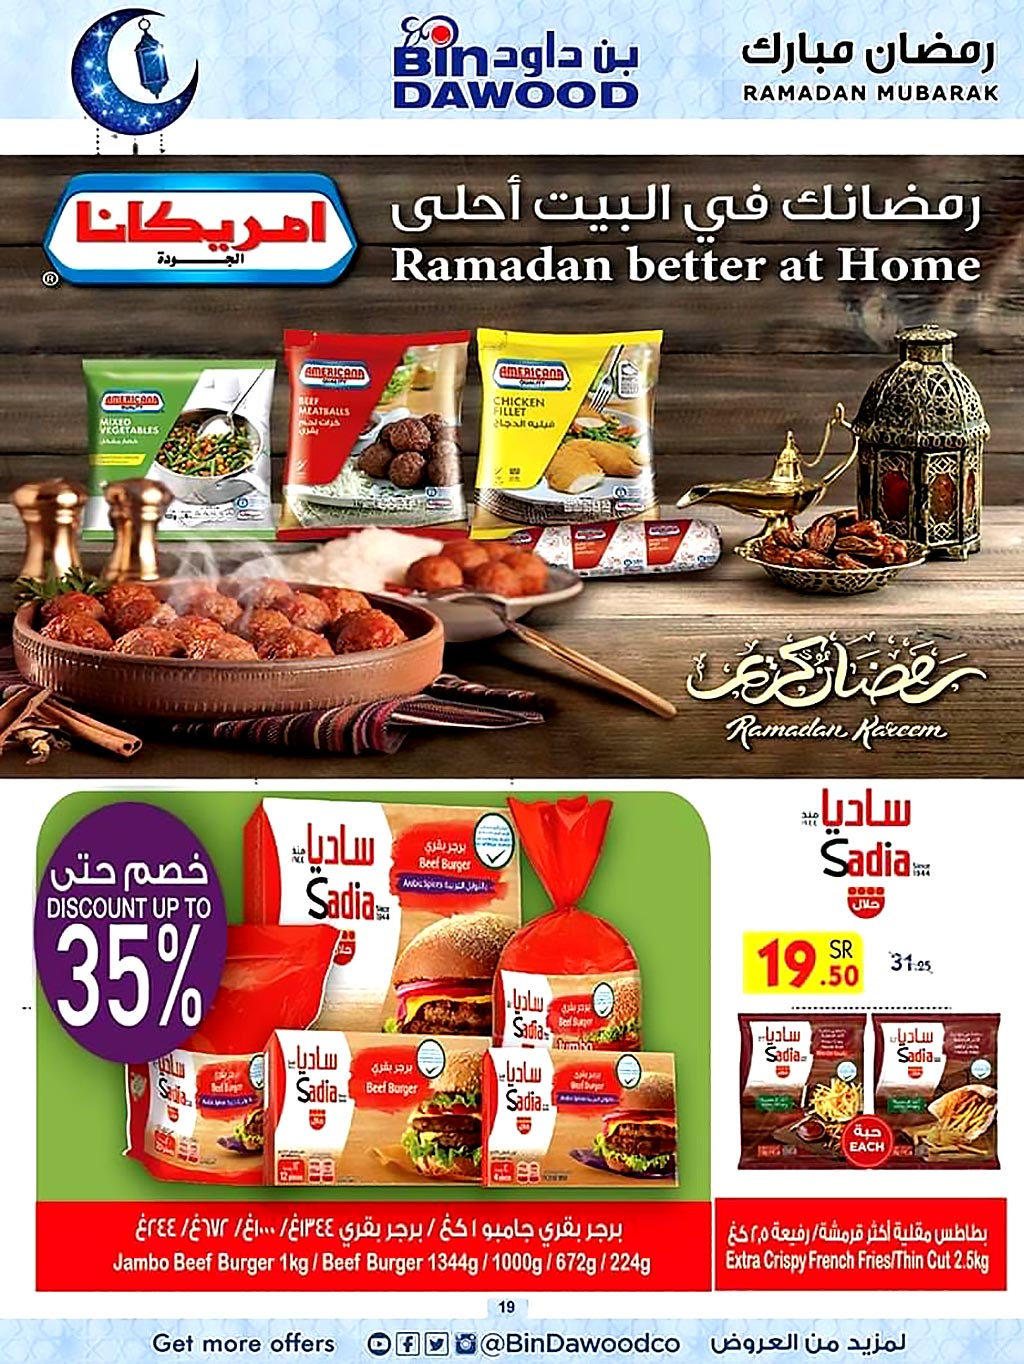 bindawood offers from 13may to 19may 2020 page number 19 عروض بـن داوود من 13 مايو حتى 19 مايو 2020 صفحة رقم 19